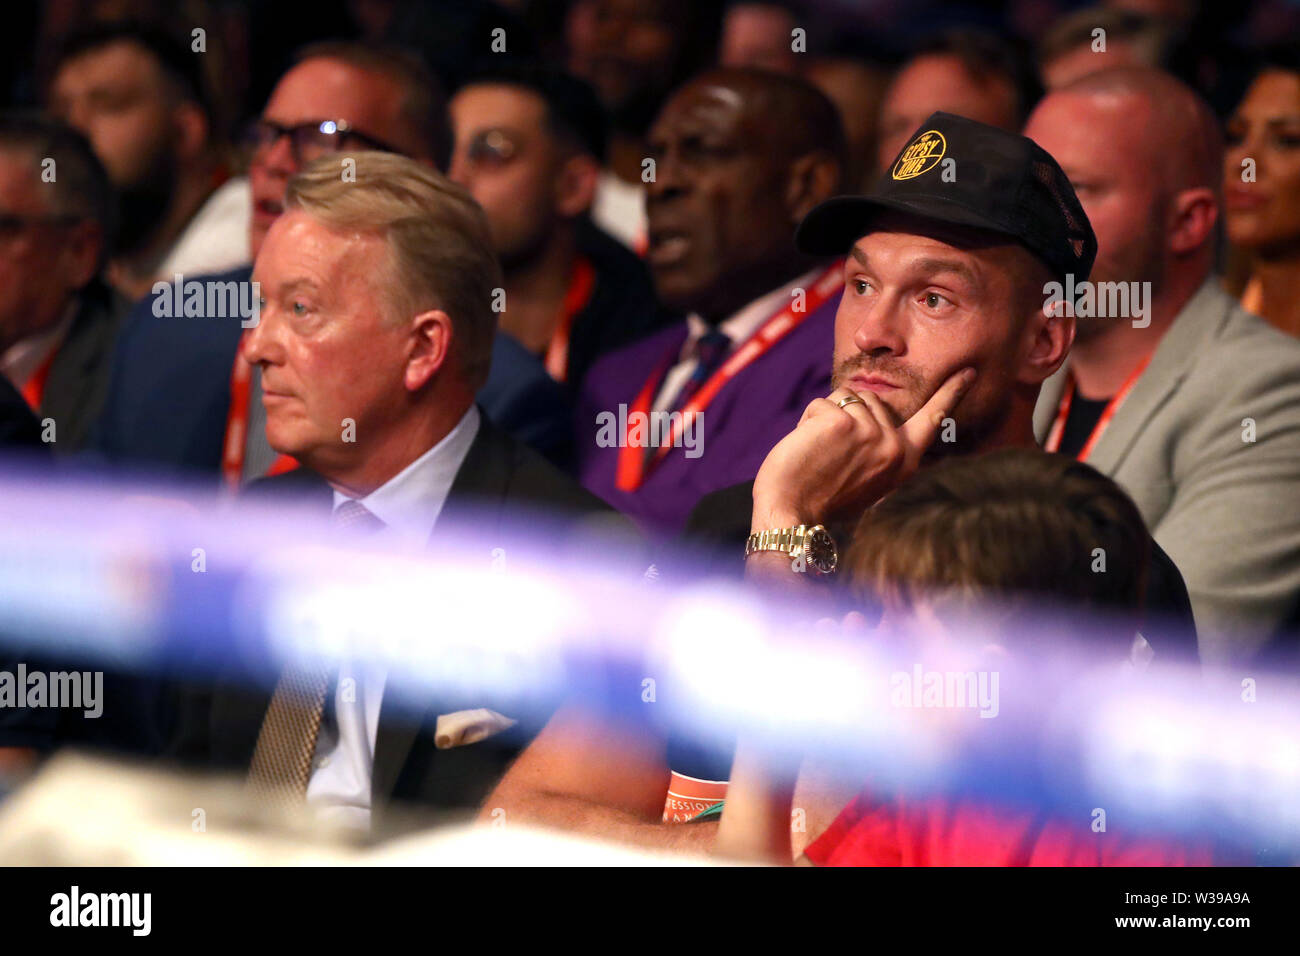 Tyson Fury watches match action with promoter Frank Warren at the O2 Arena, London. - Stock Image